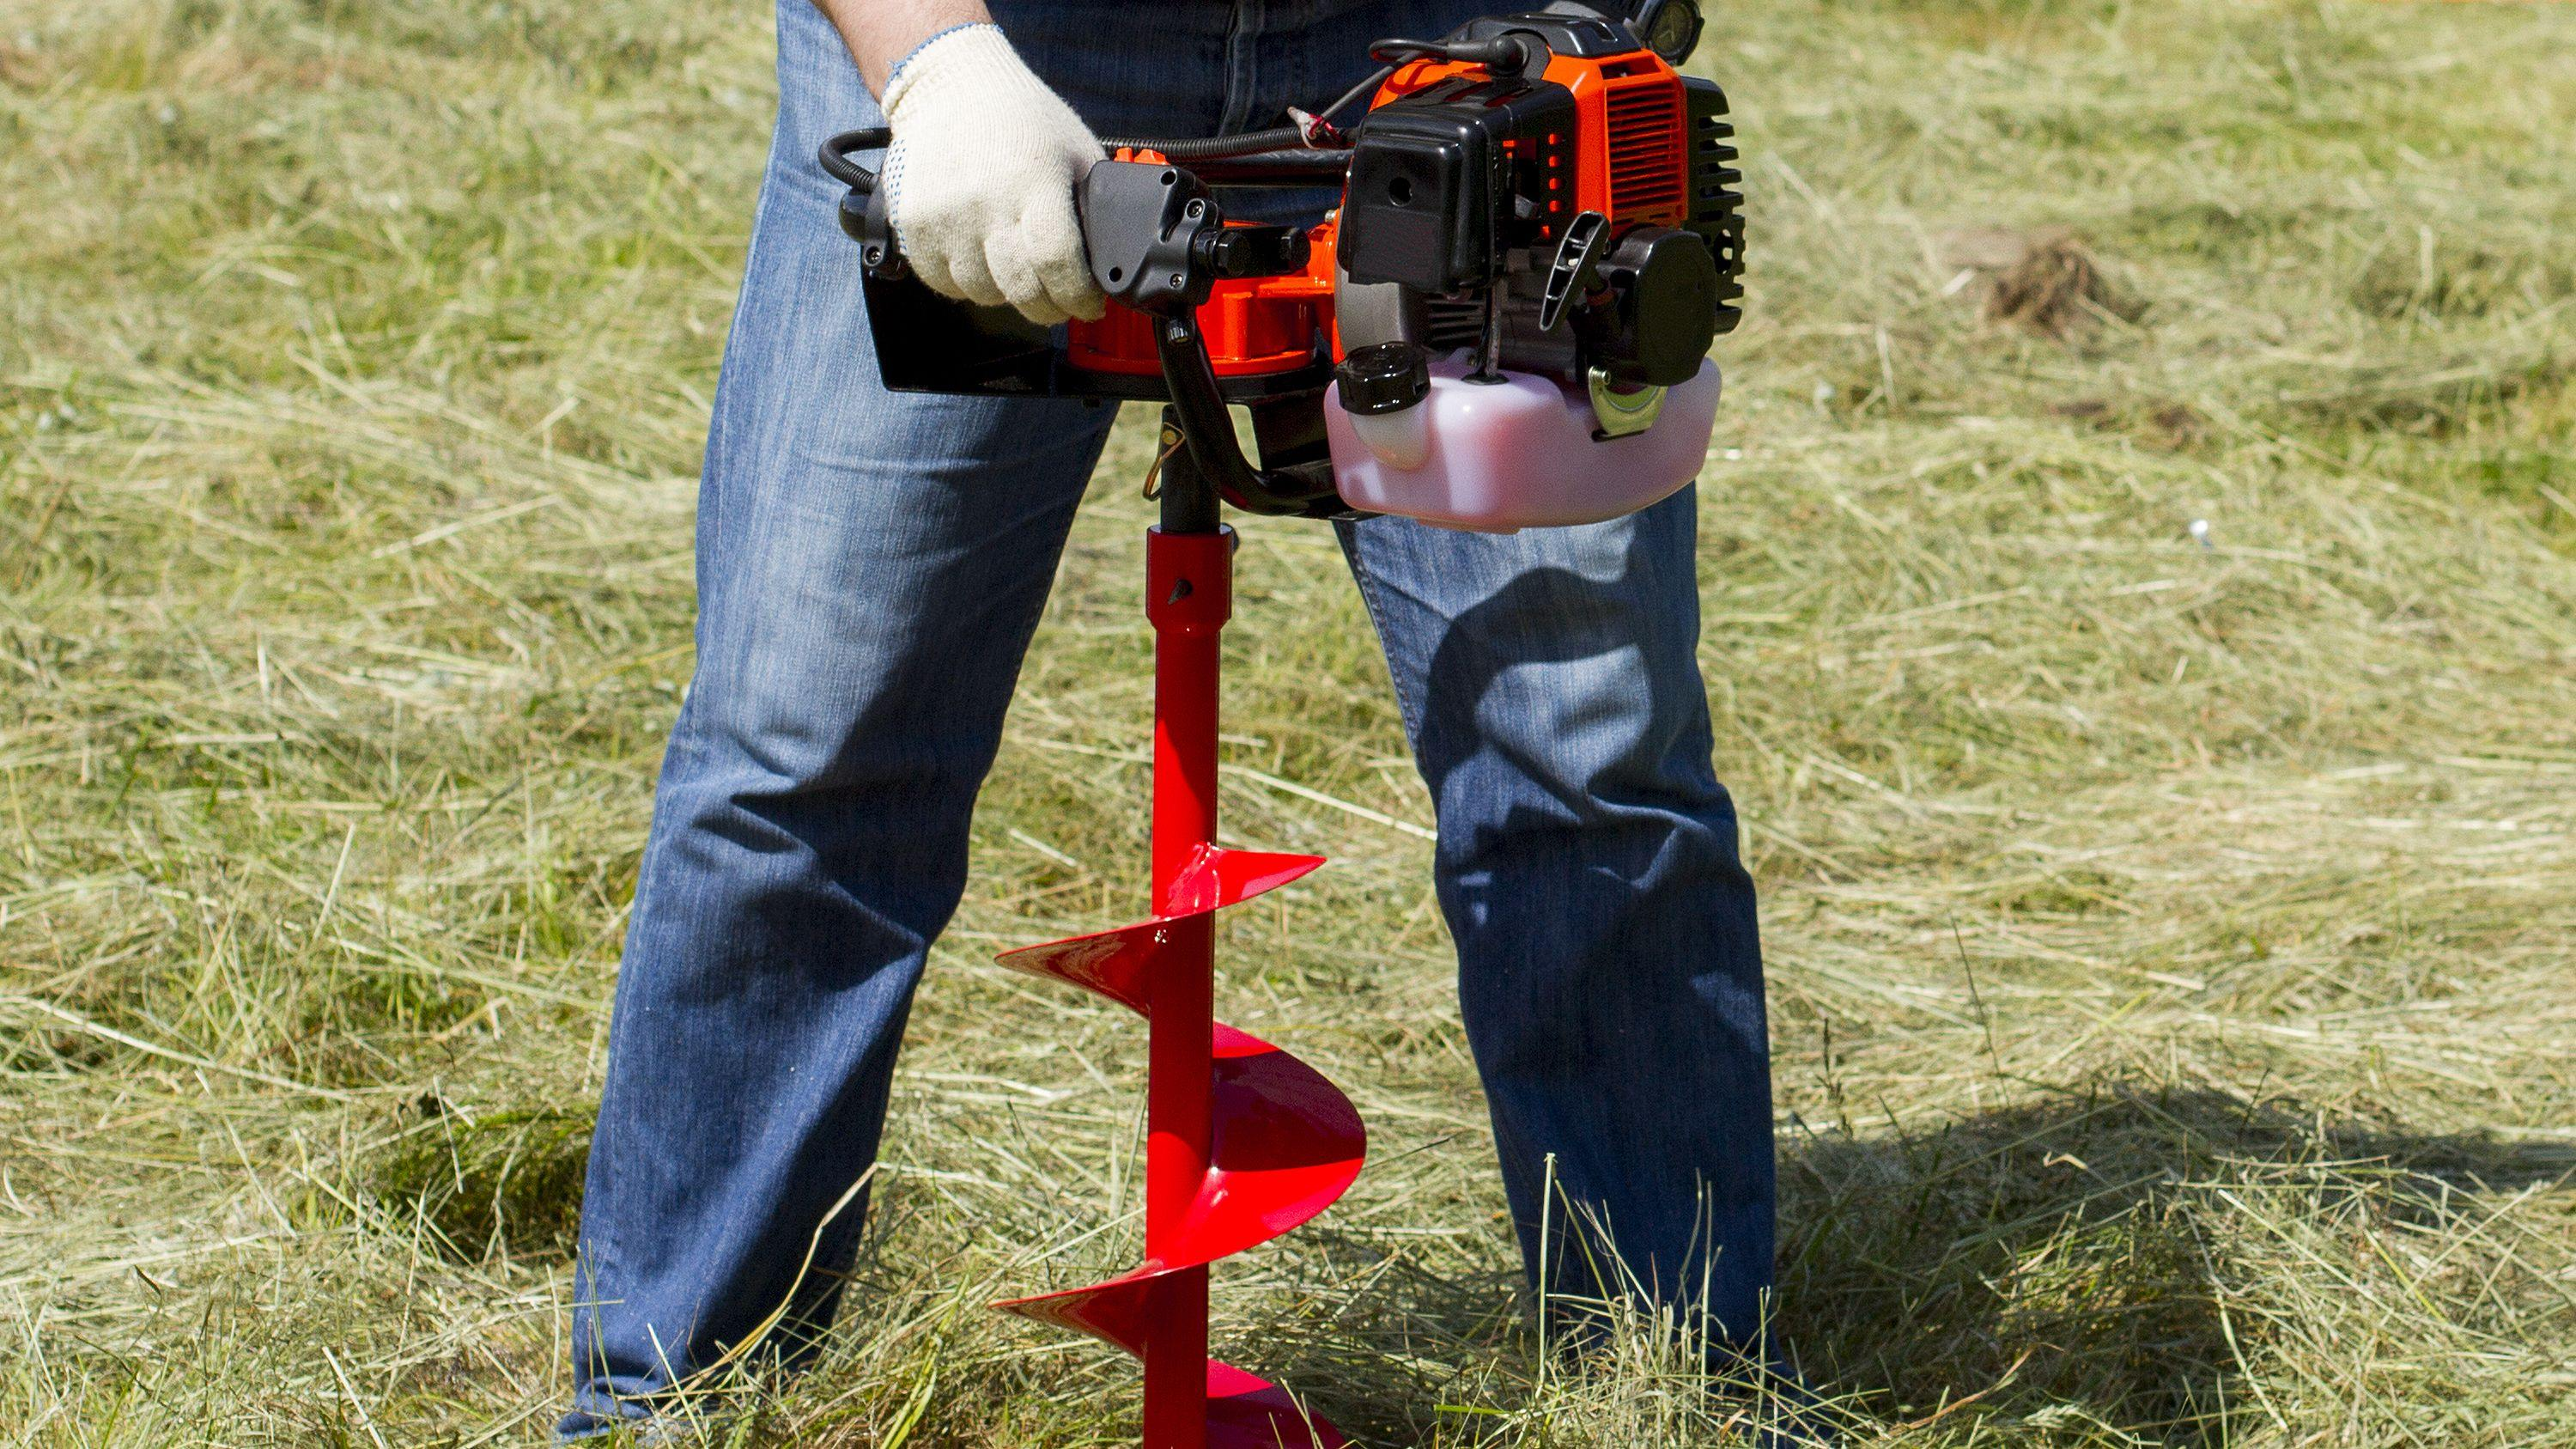 Motorized auger buying guide